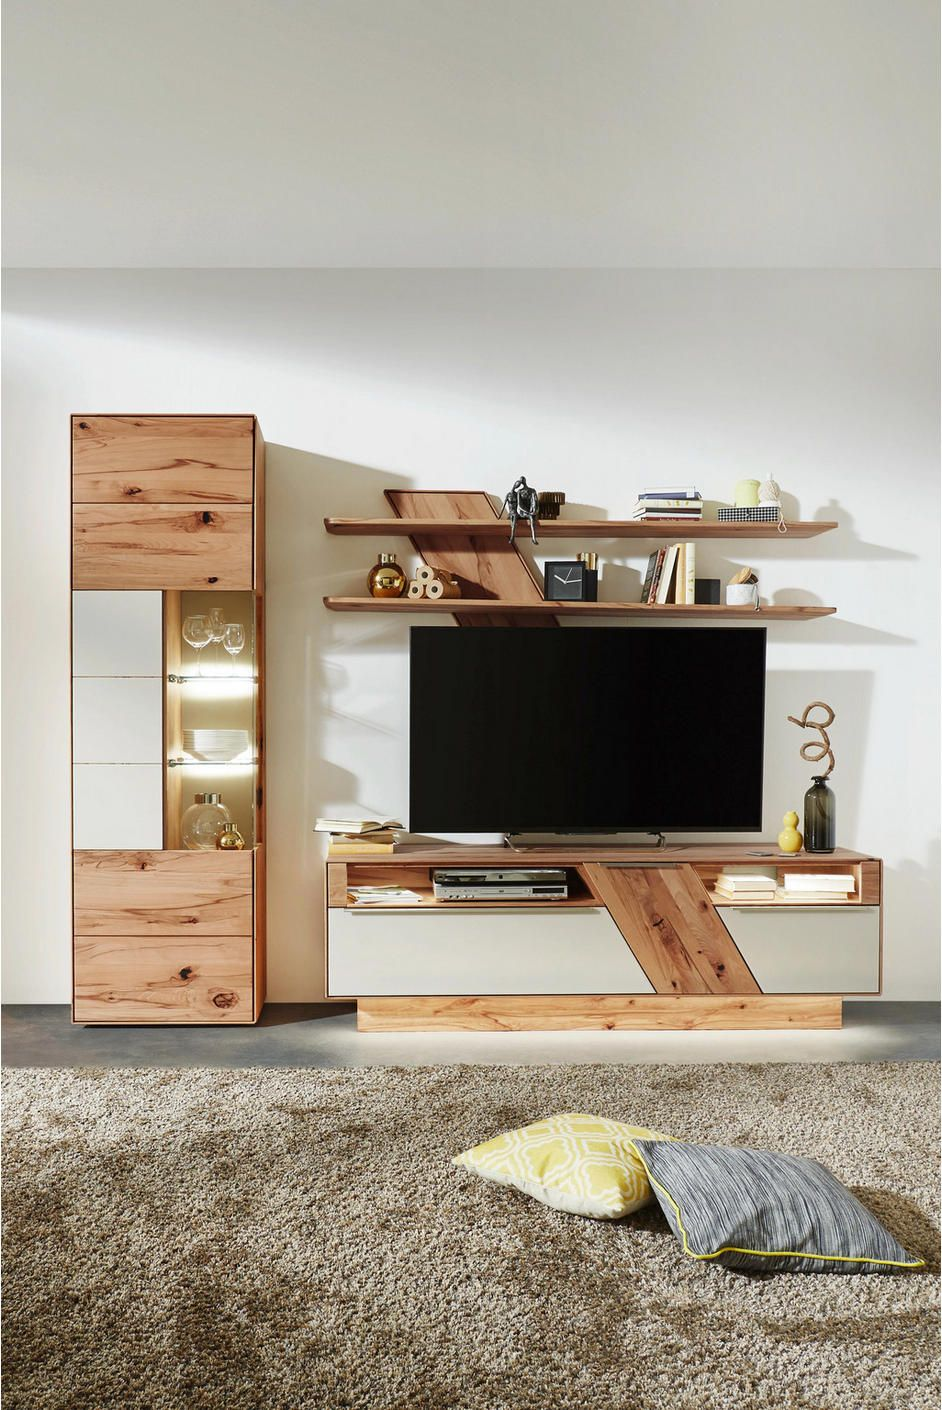 Wohnwand In Weiss Buchefarben Tv Shelf Design Wall Unit Designs Apartment Interior Design